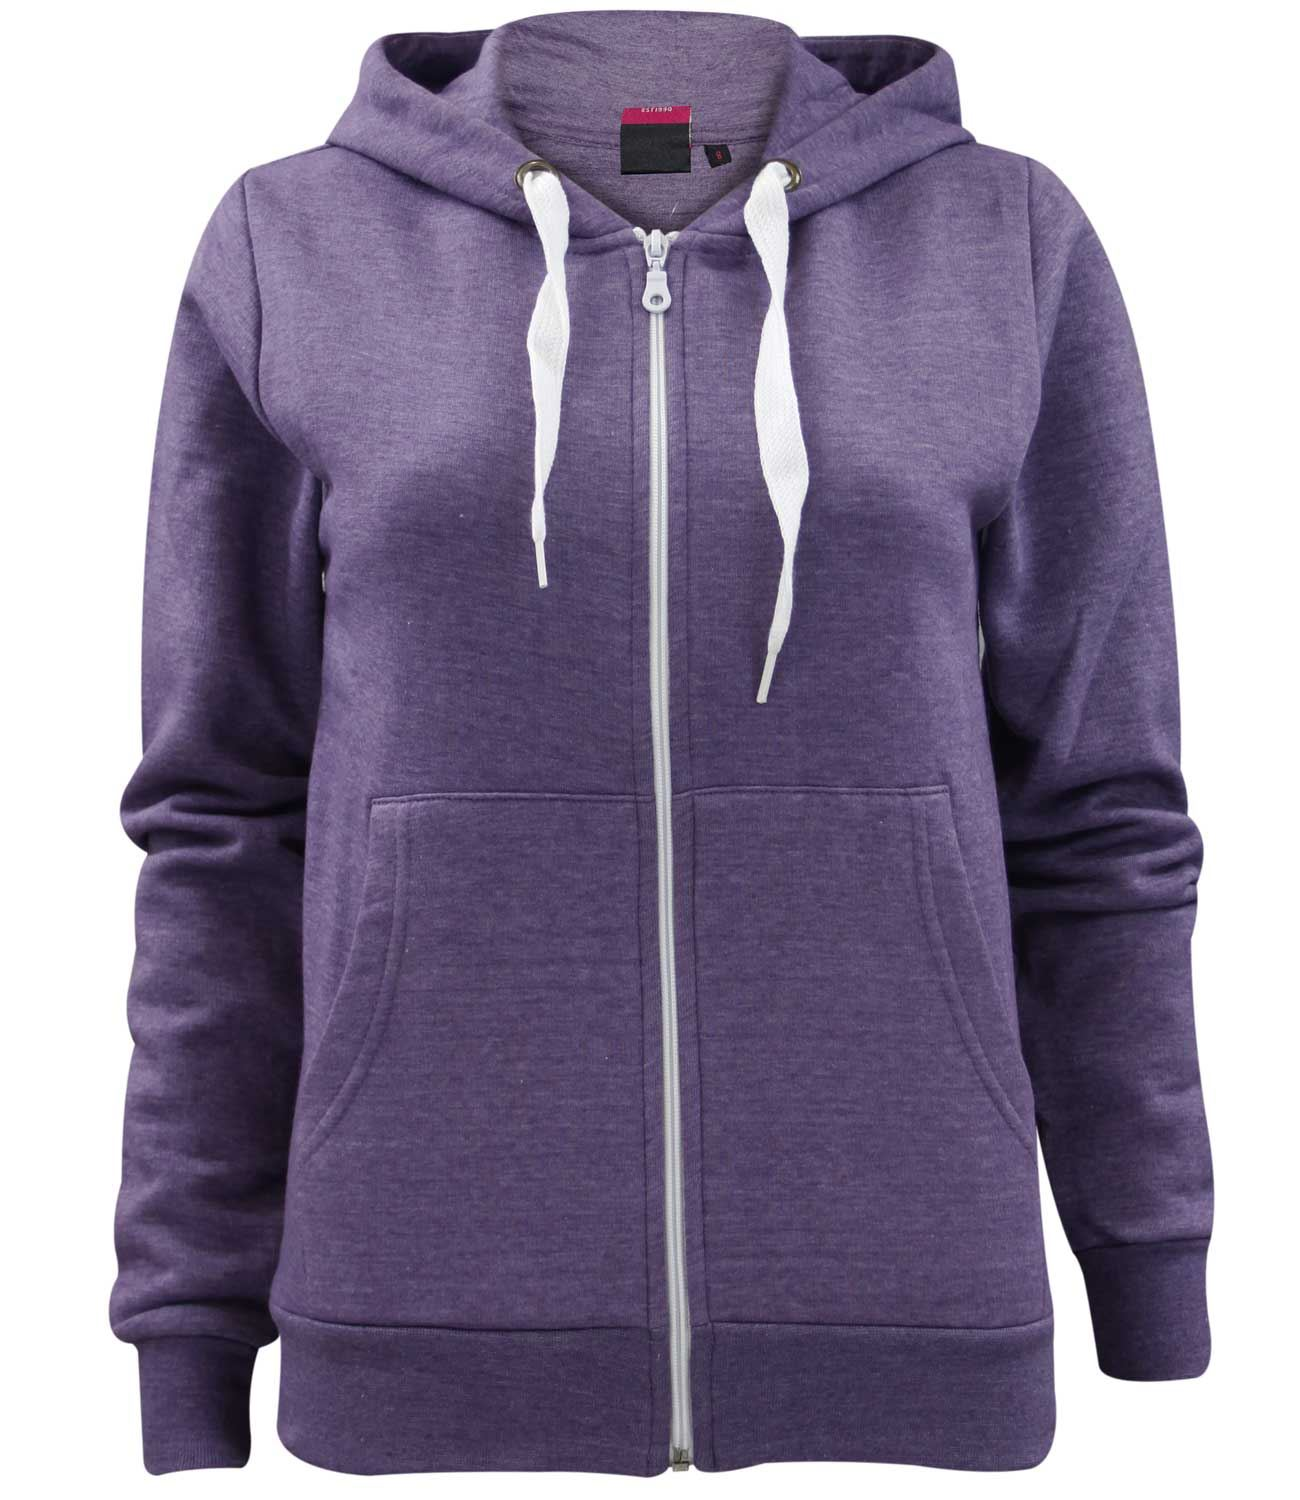 New Ladies Girls Plain Zip Up Hoodie Sweatshirt Women Fleece ...